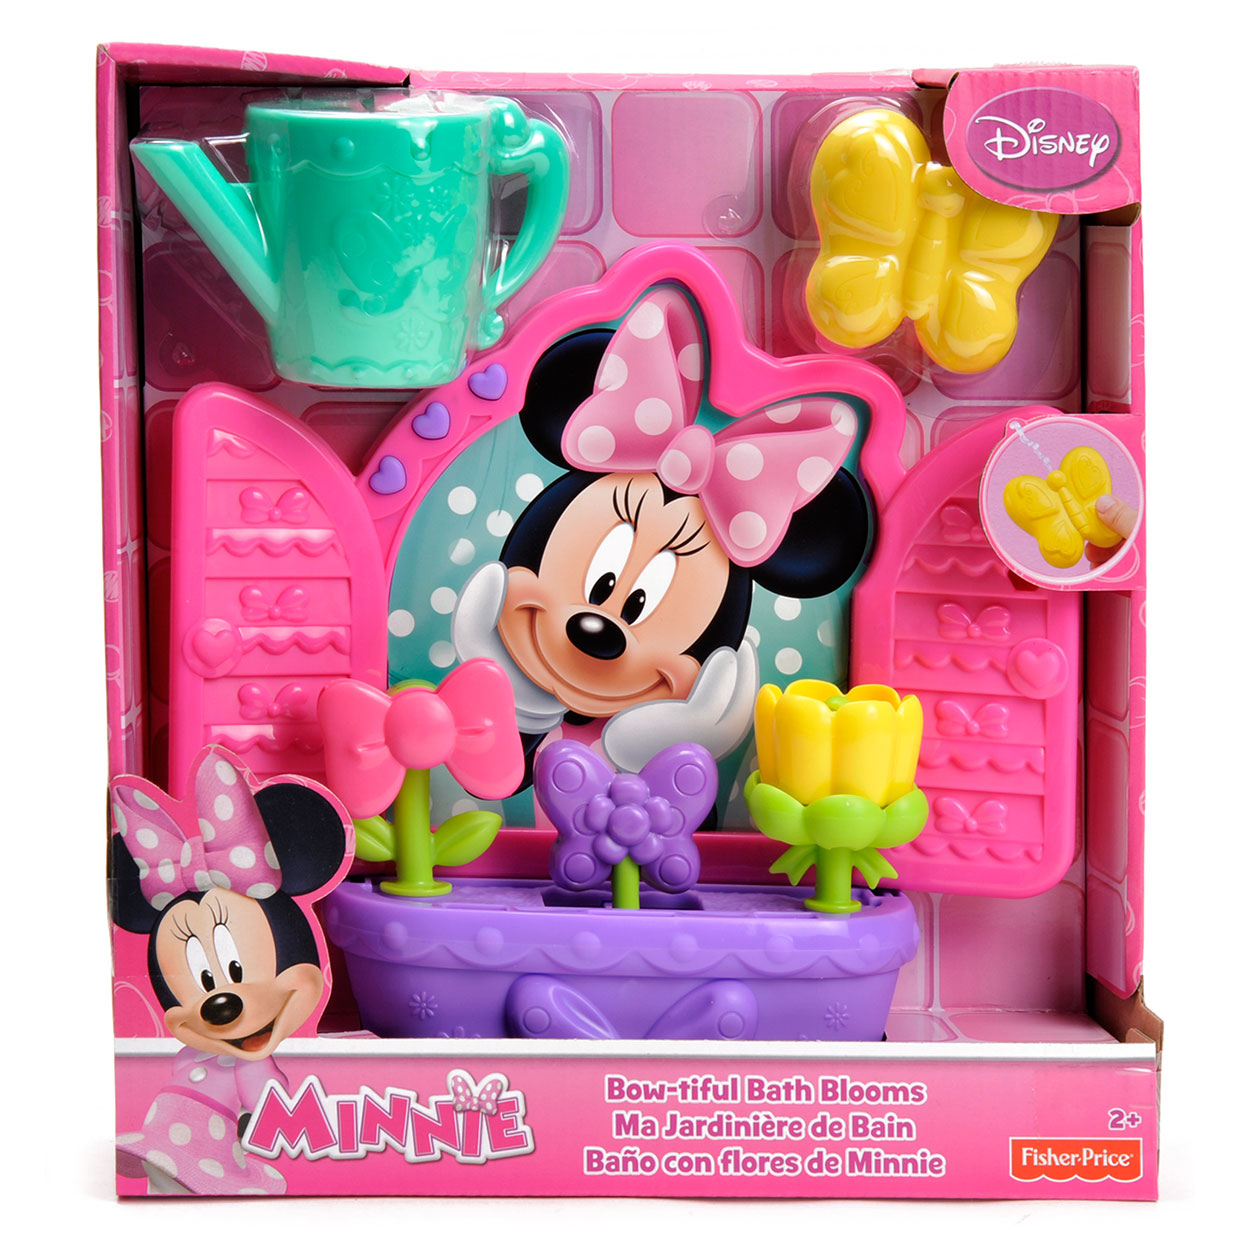 Bad Set For Baby Fisher Price Minnie 39s Bow Rific Badset Roze Online Kopen